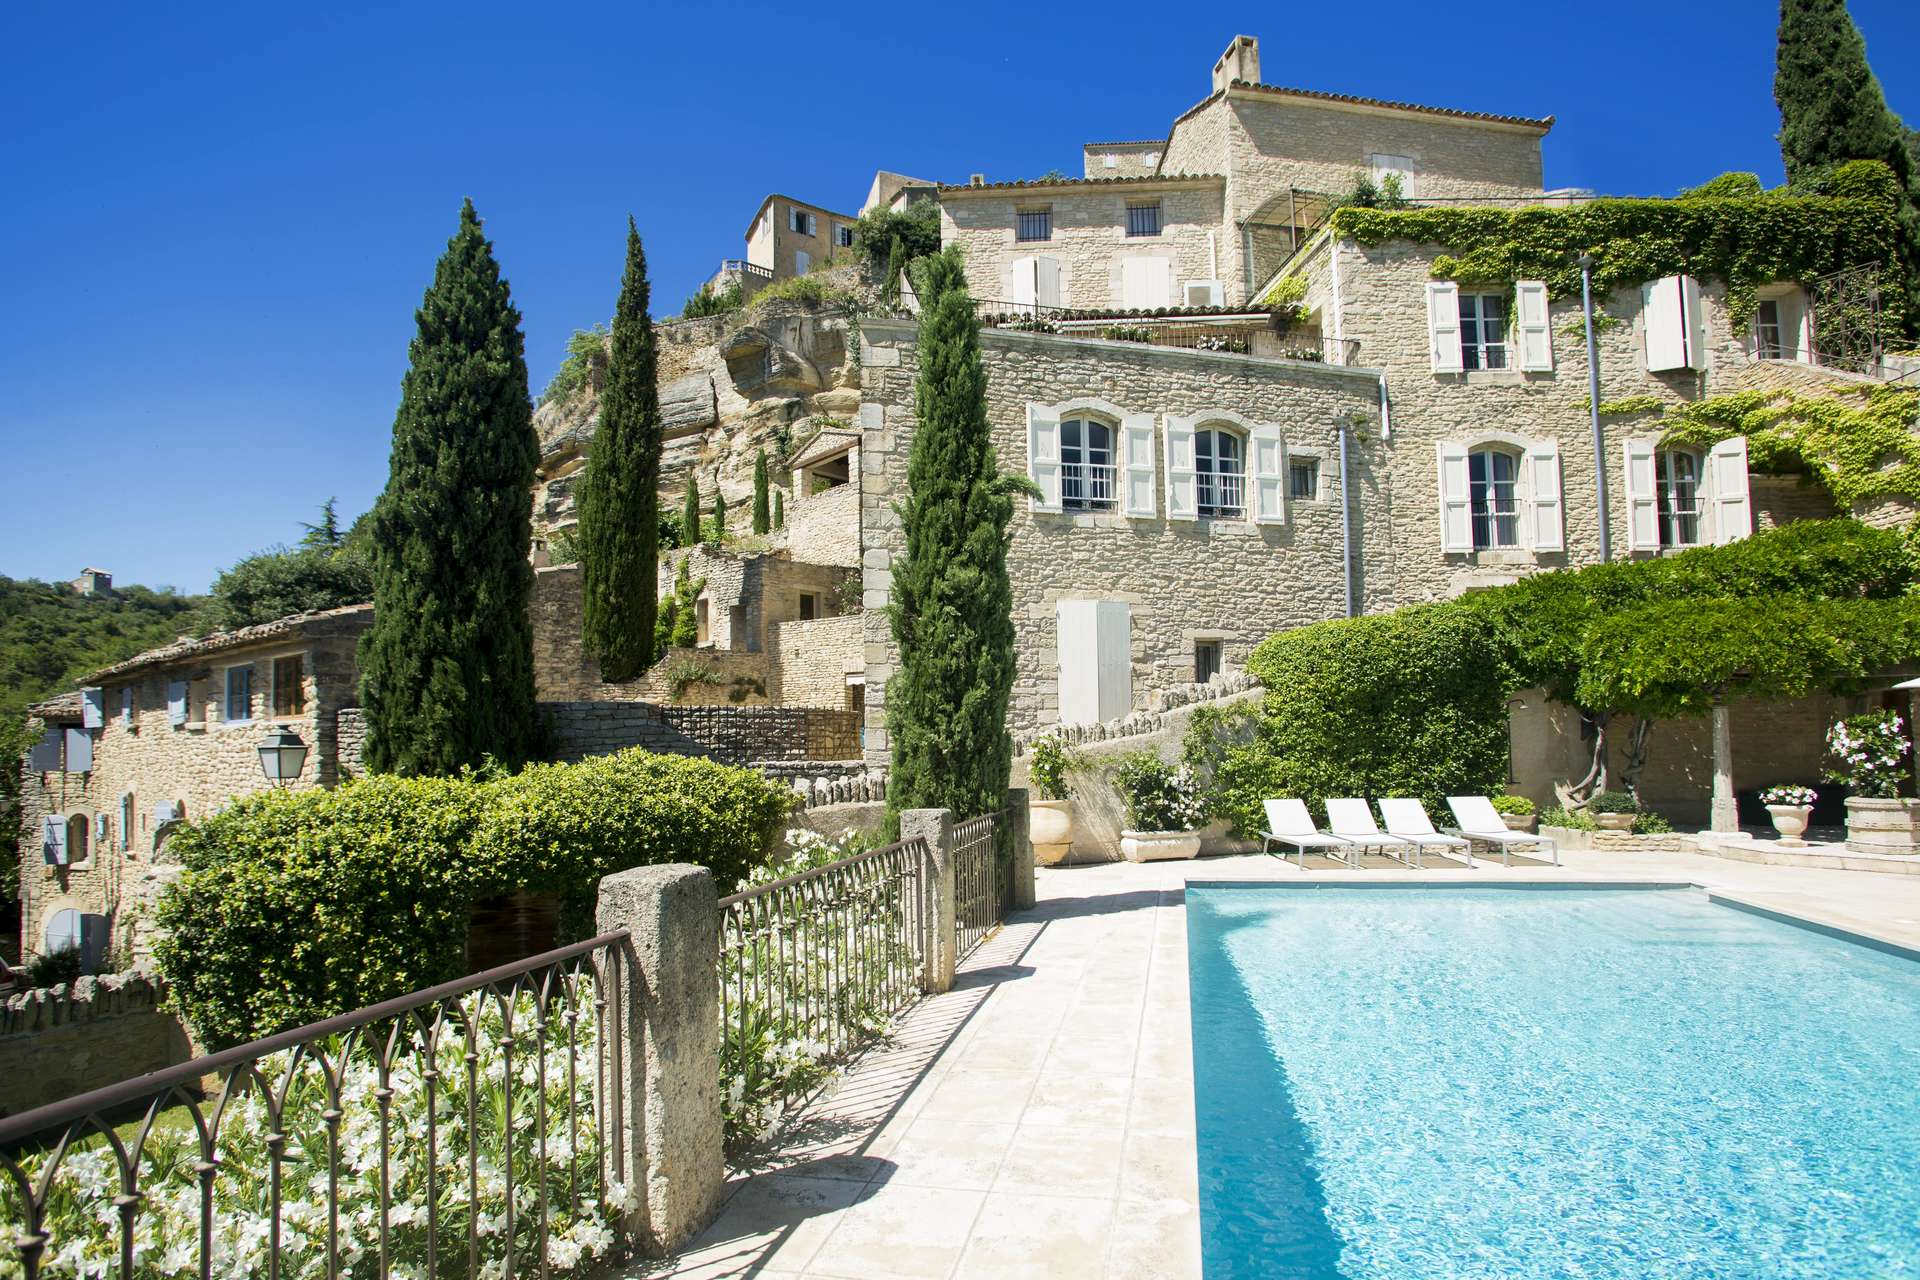 Luxury vacation rentals europe - France - Provence ih - Provence luberon - Vigne Vierge 2 - Image 1/33